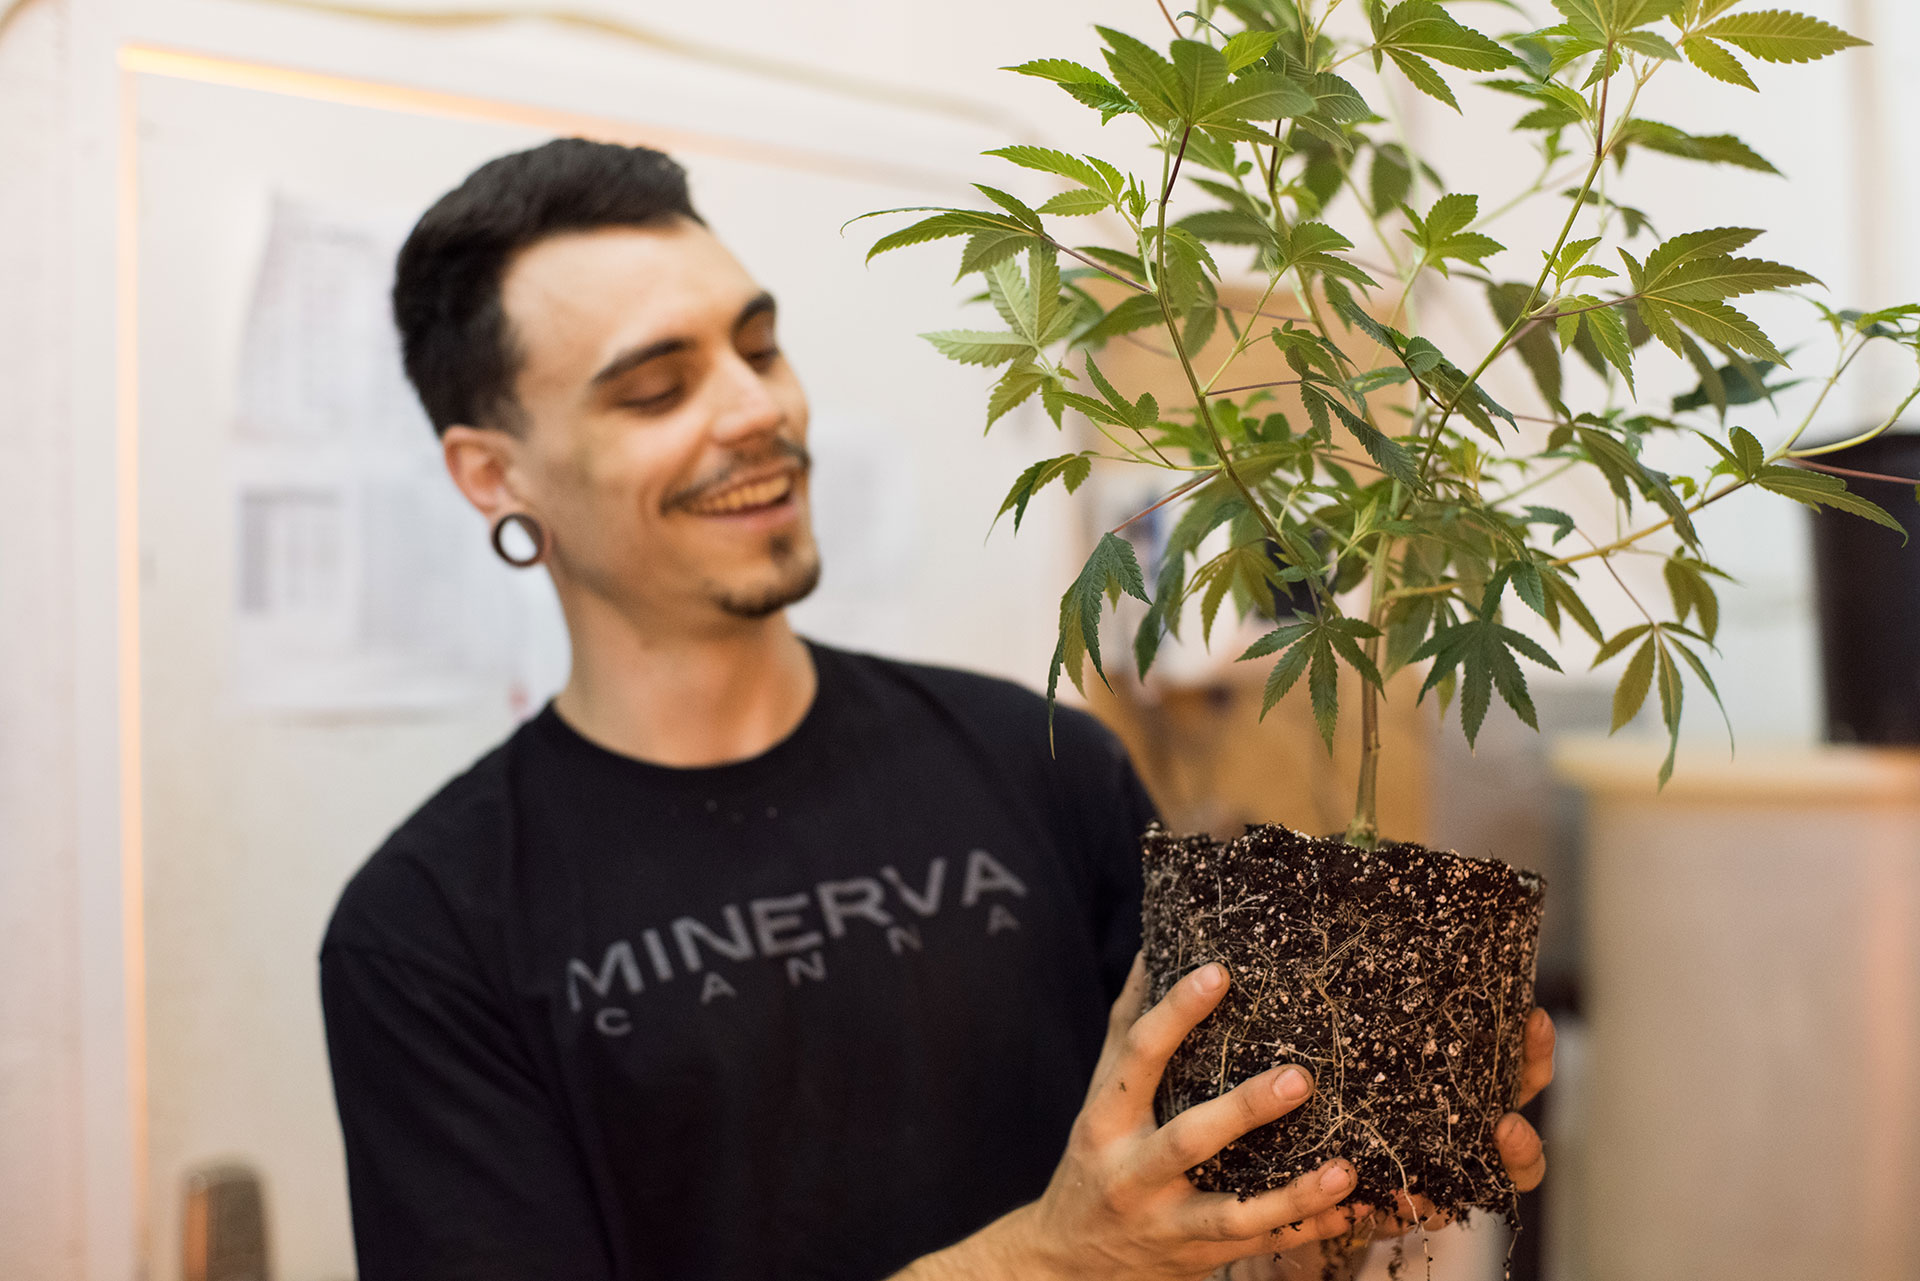 Minerva Canna Difference